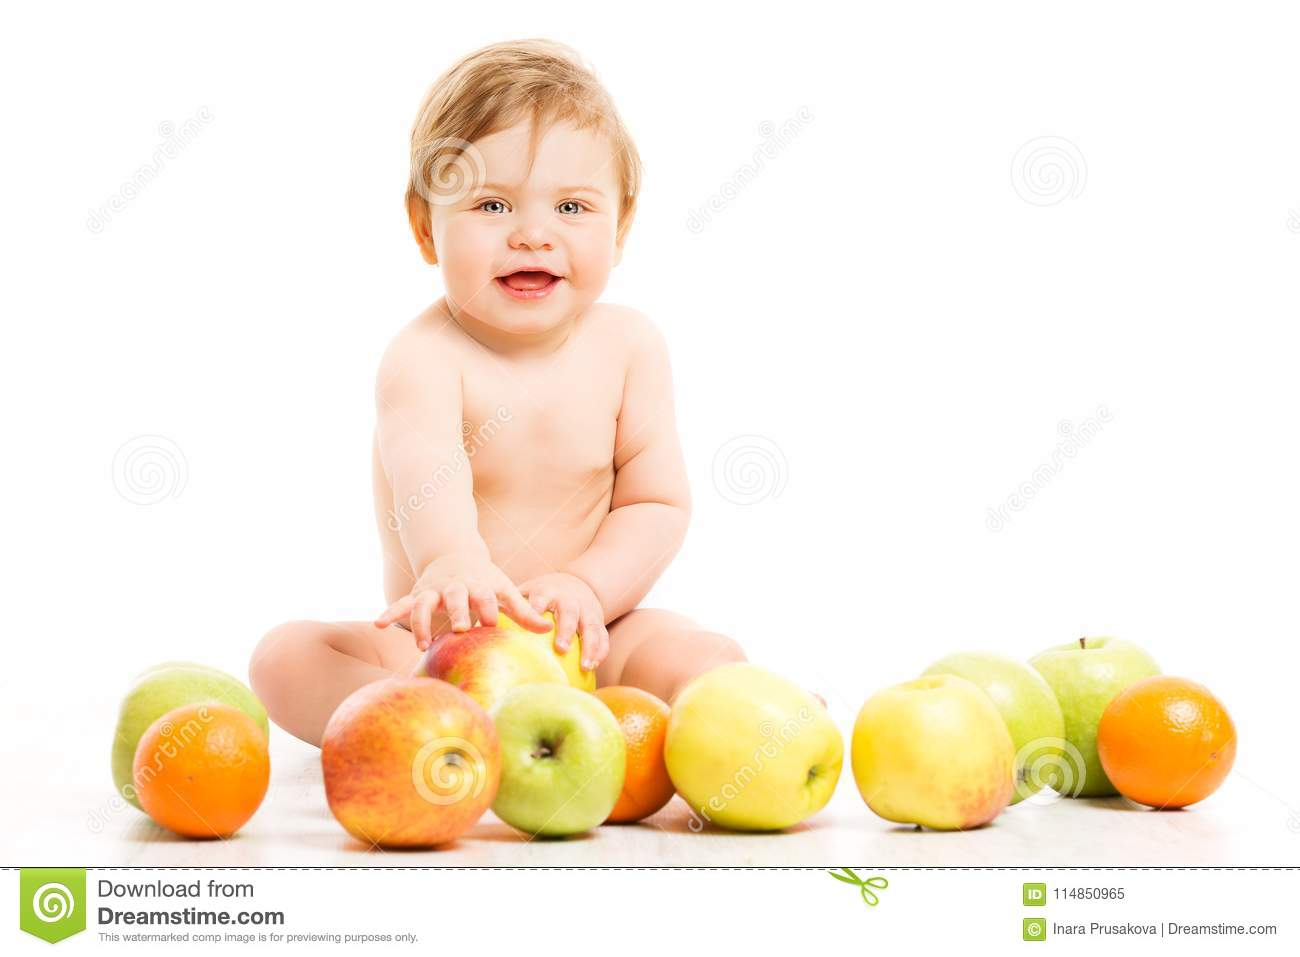 Fruit for Baby, Happy Child Girl with Apples sitting over White